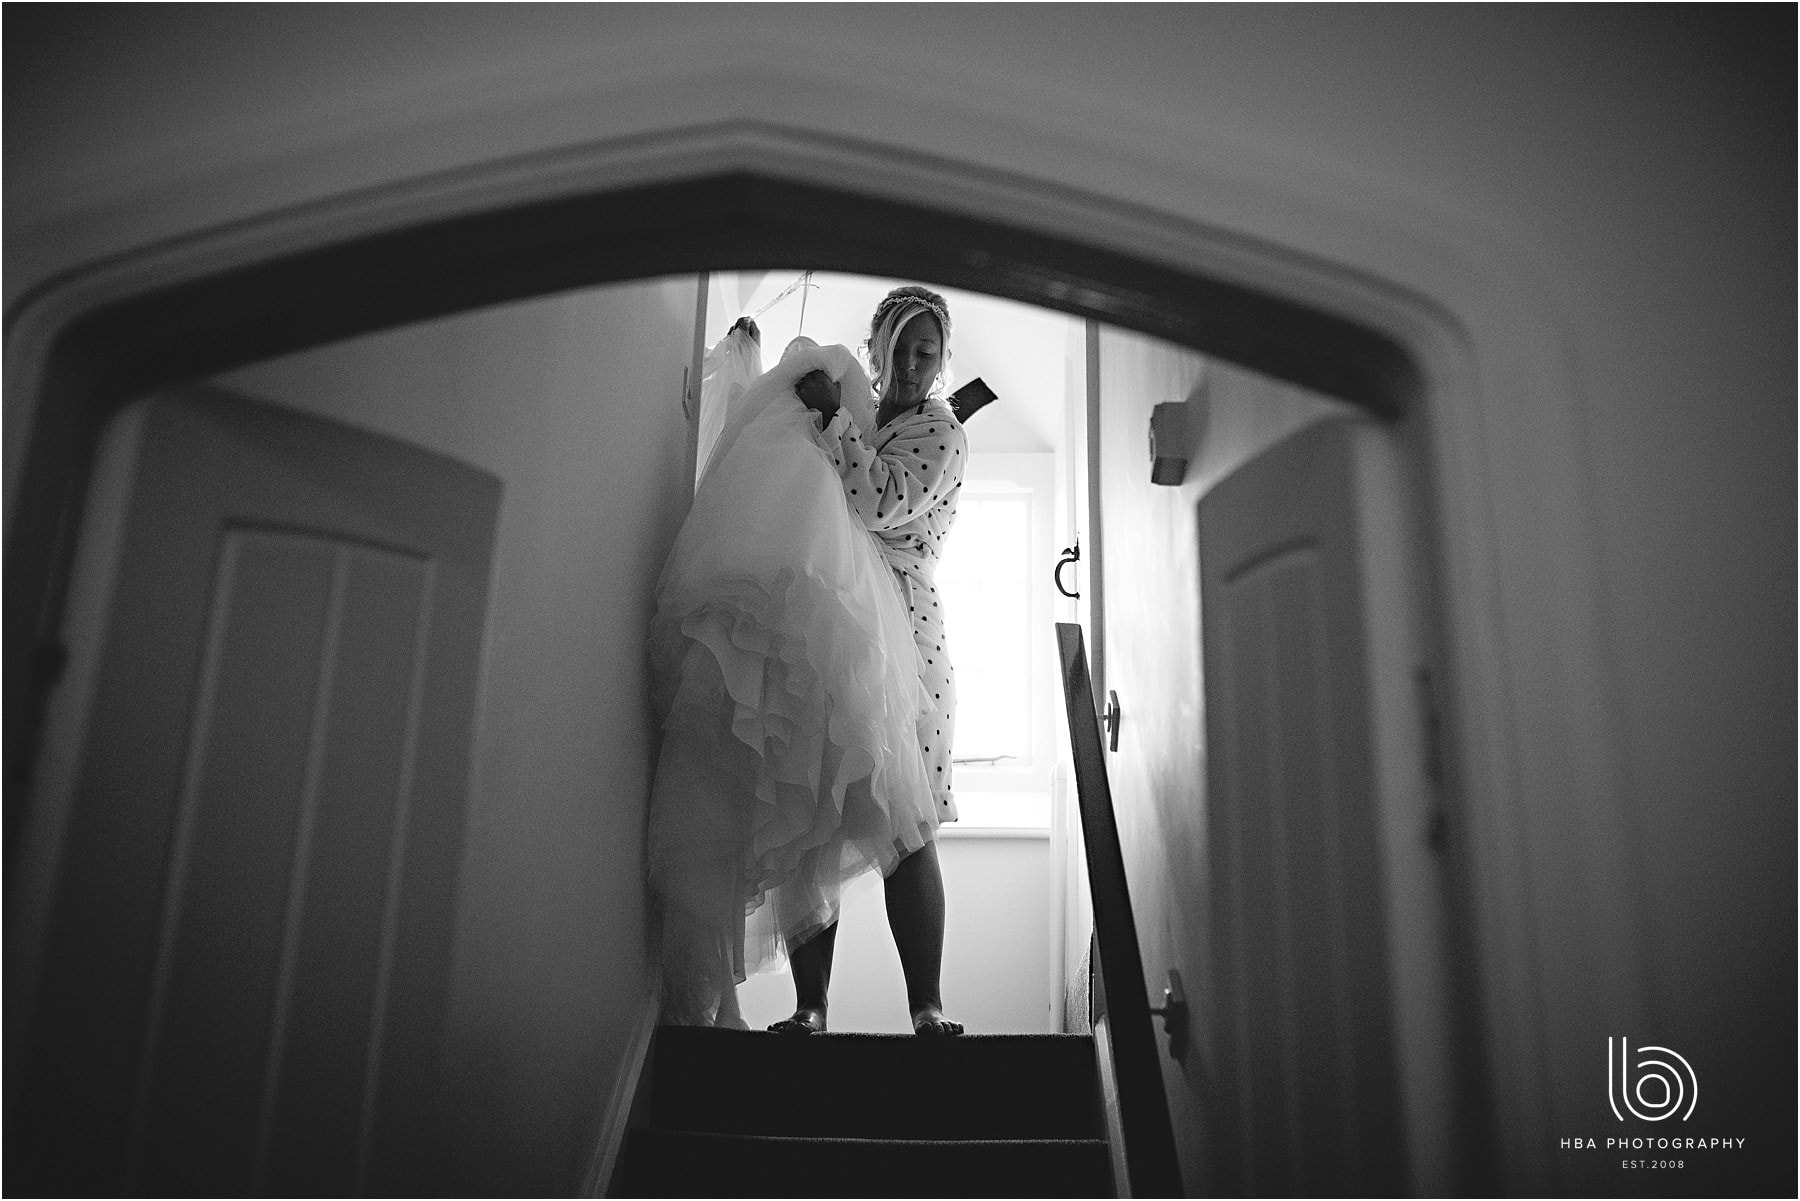 The bride carrying her wedding dress down the stairs